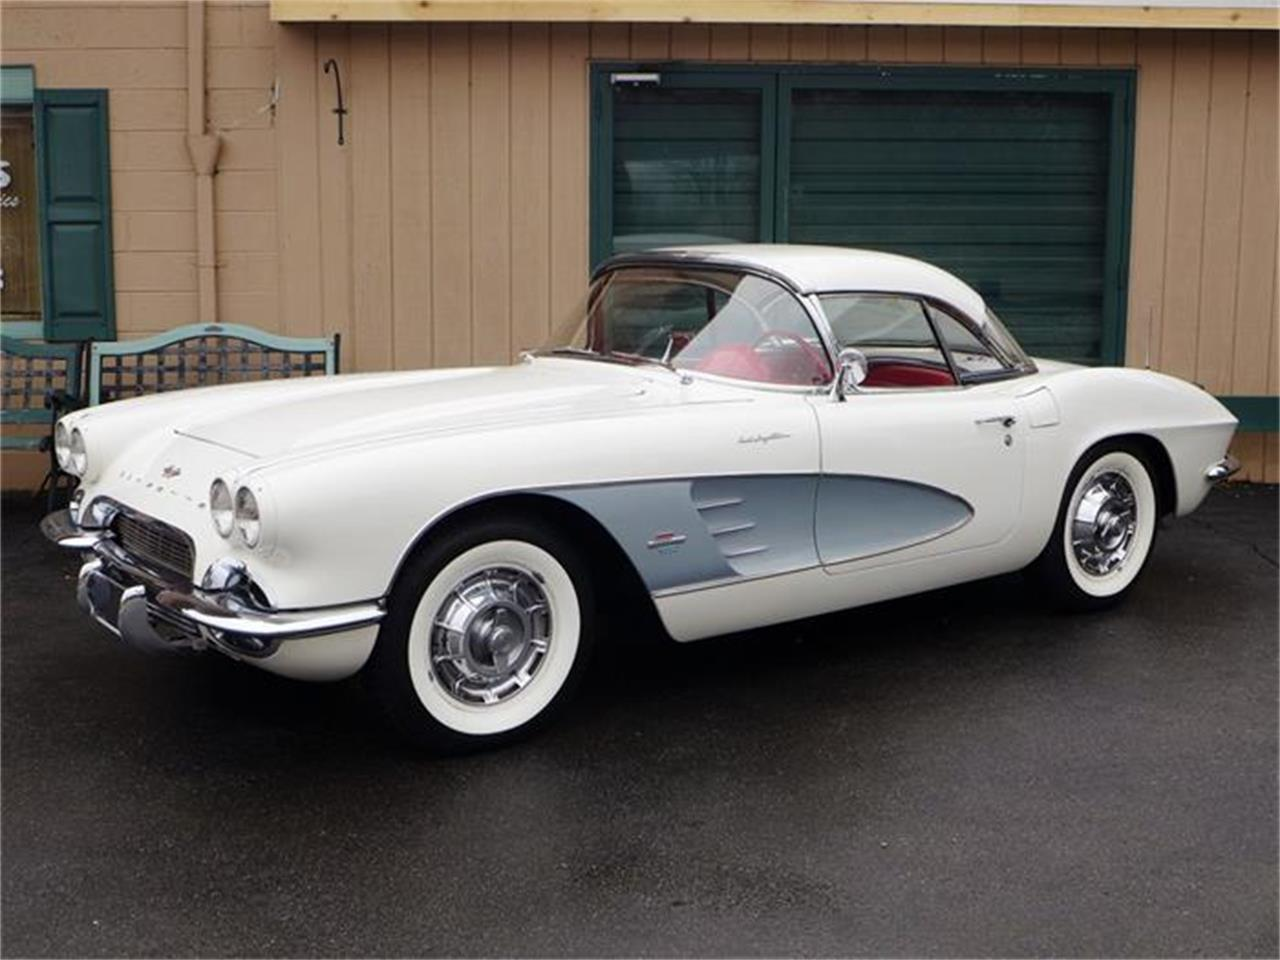 Large Picture of Classic 1961 Chevrolet Corvette located in Old Forge Pennsylvania - $99,500.00 - FBYK